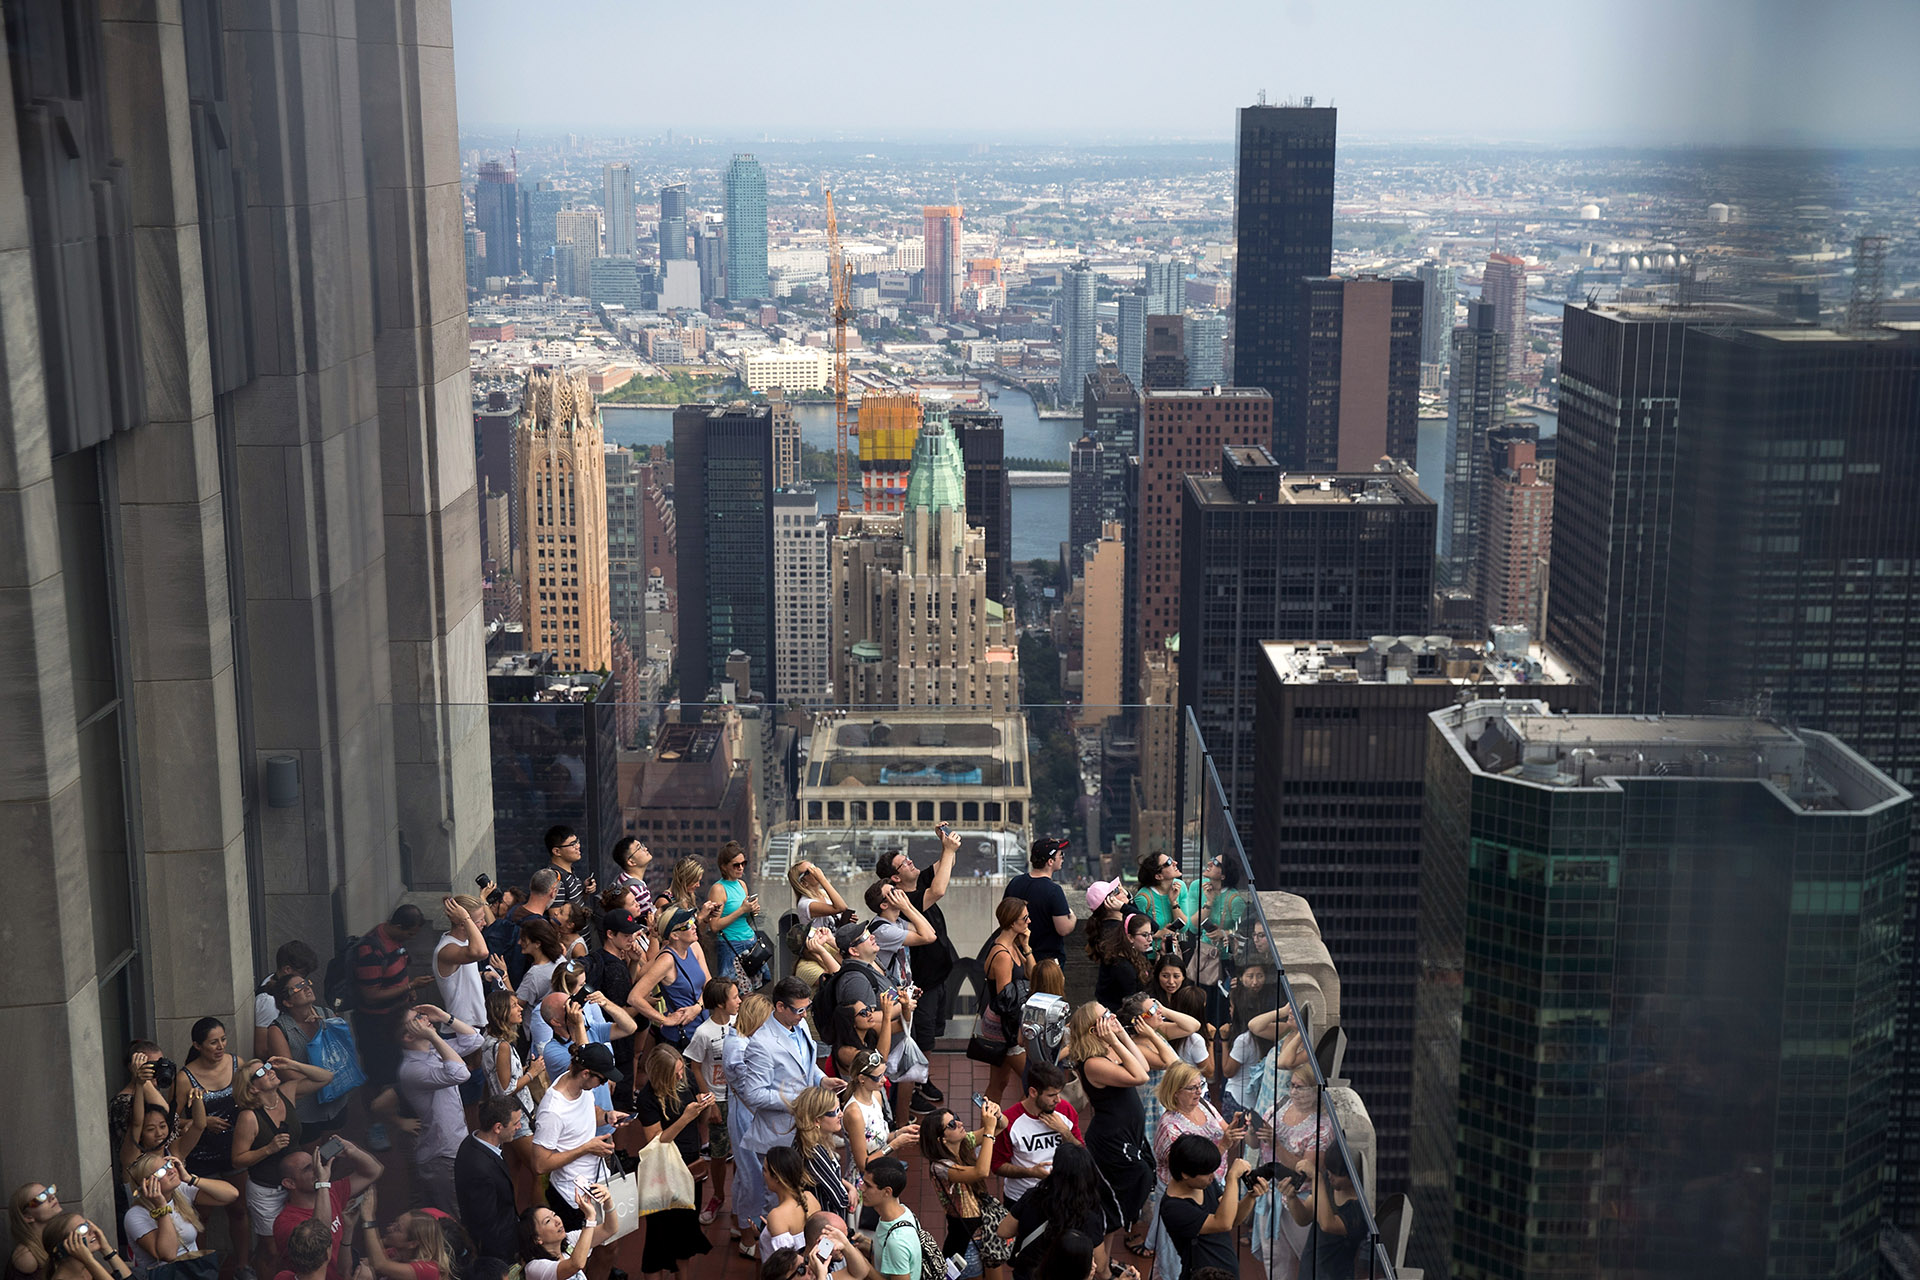 El eclipse solar desde Top of the Rock del Rockefeller Center, en Nueva York